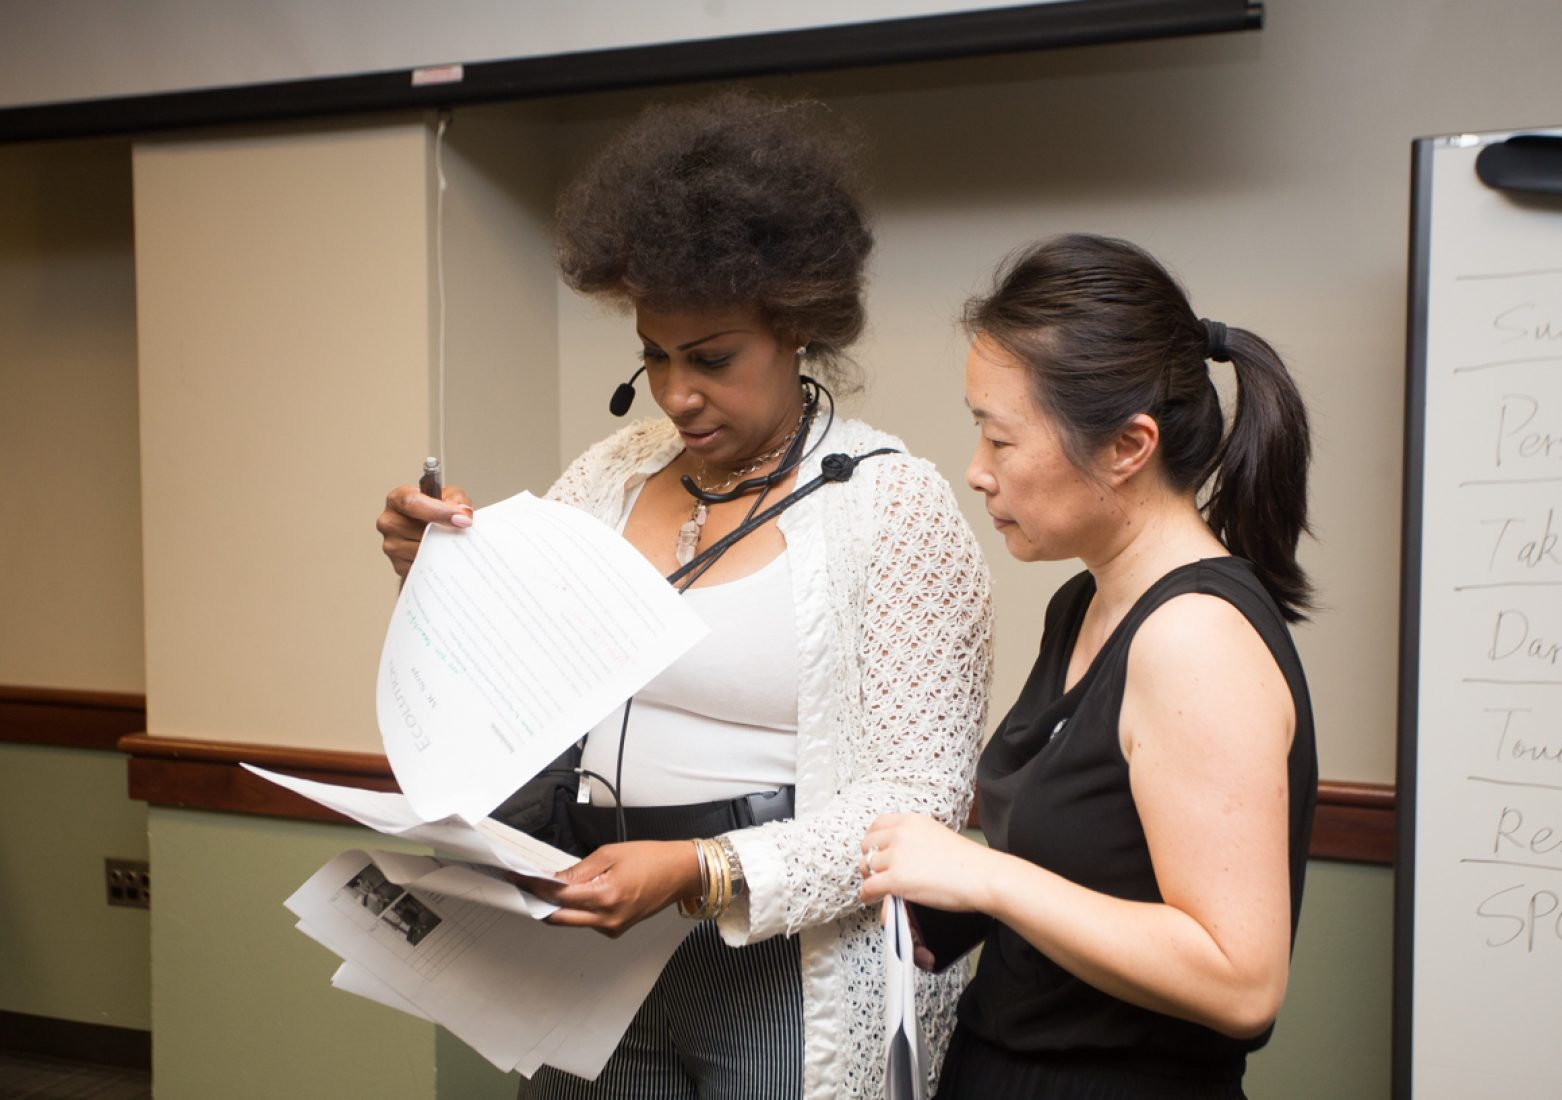 SFA faculty adviser Dong Shen goes over the show script with the event's host during rehearsal in the University Union Foothill Suite on Wednesday. (Photo by Nicole Fowler)